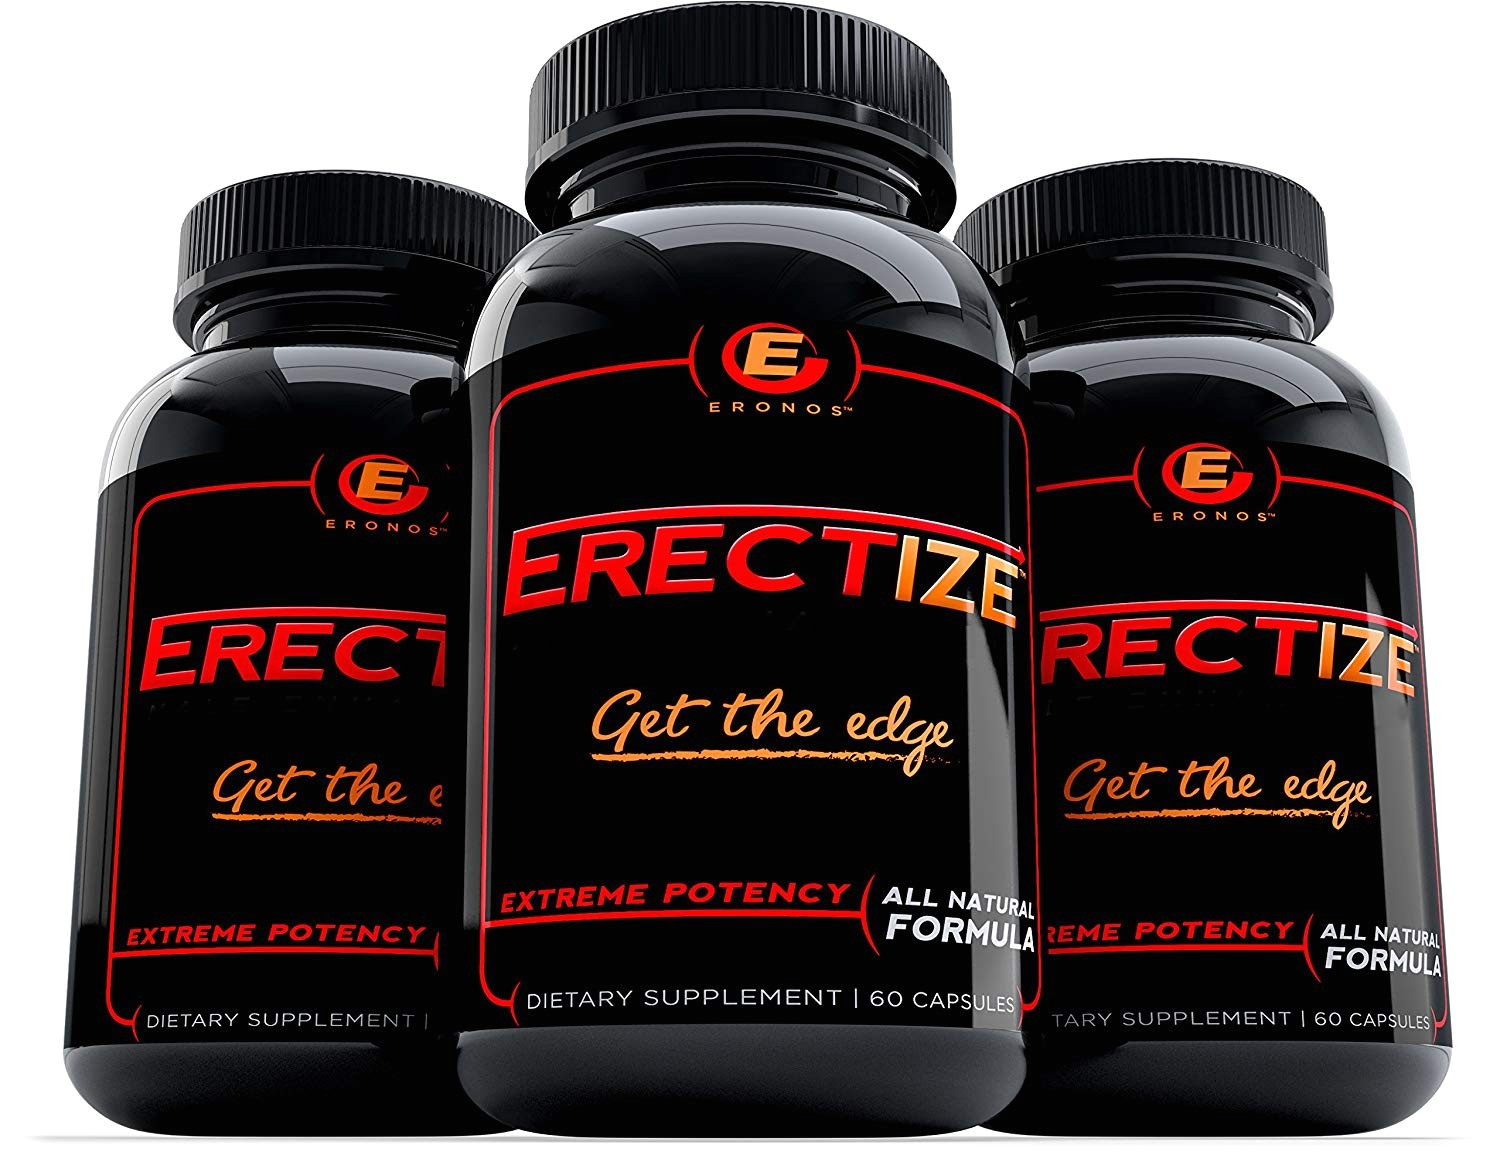 amazon com erectize male enhancement get the edge extreme male formula testosterone booster libido stamina 60 capsules by eronos health personal